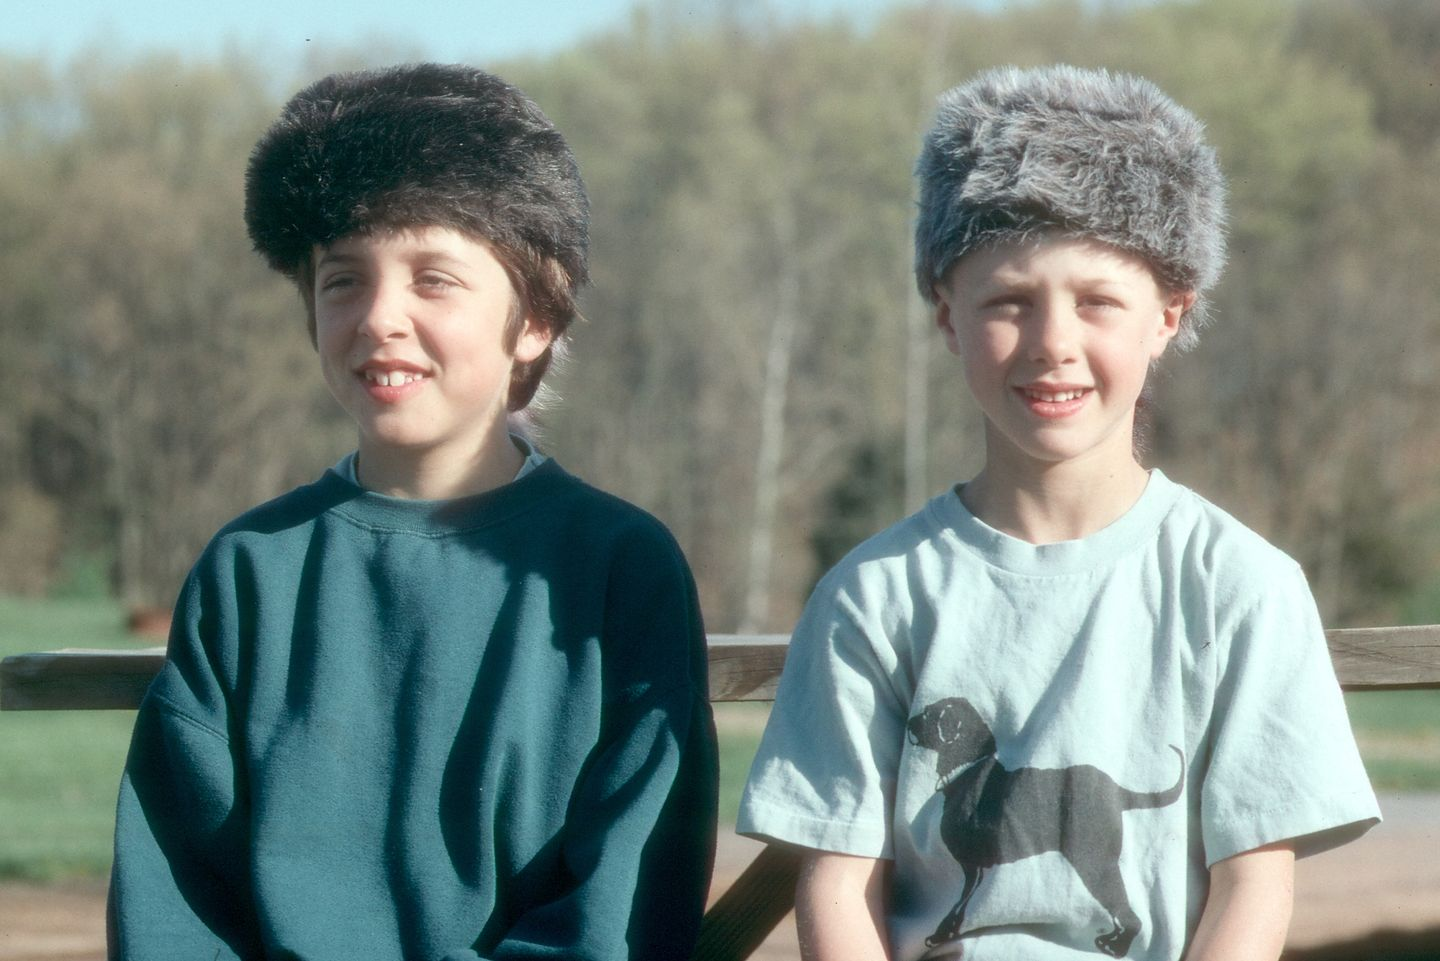 Boys sporting new coonskin hats